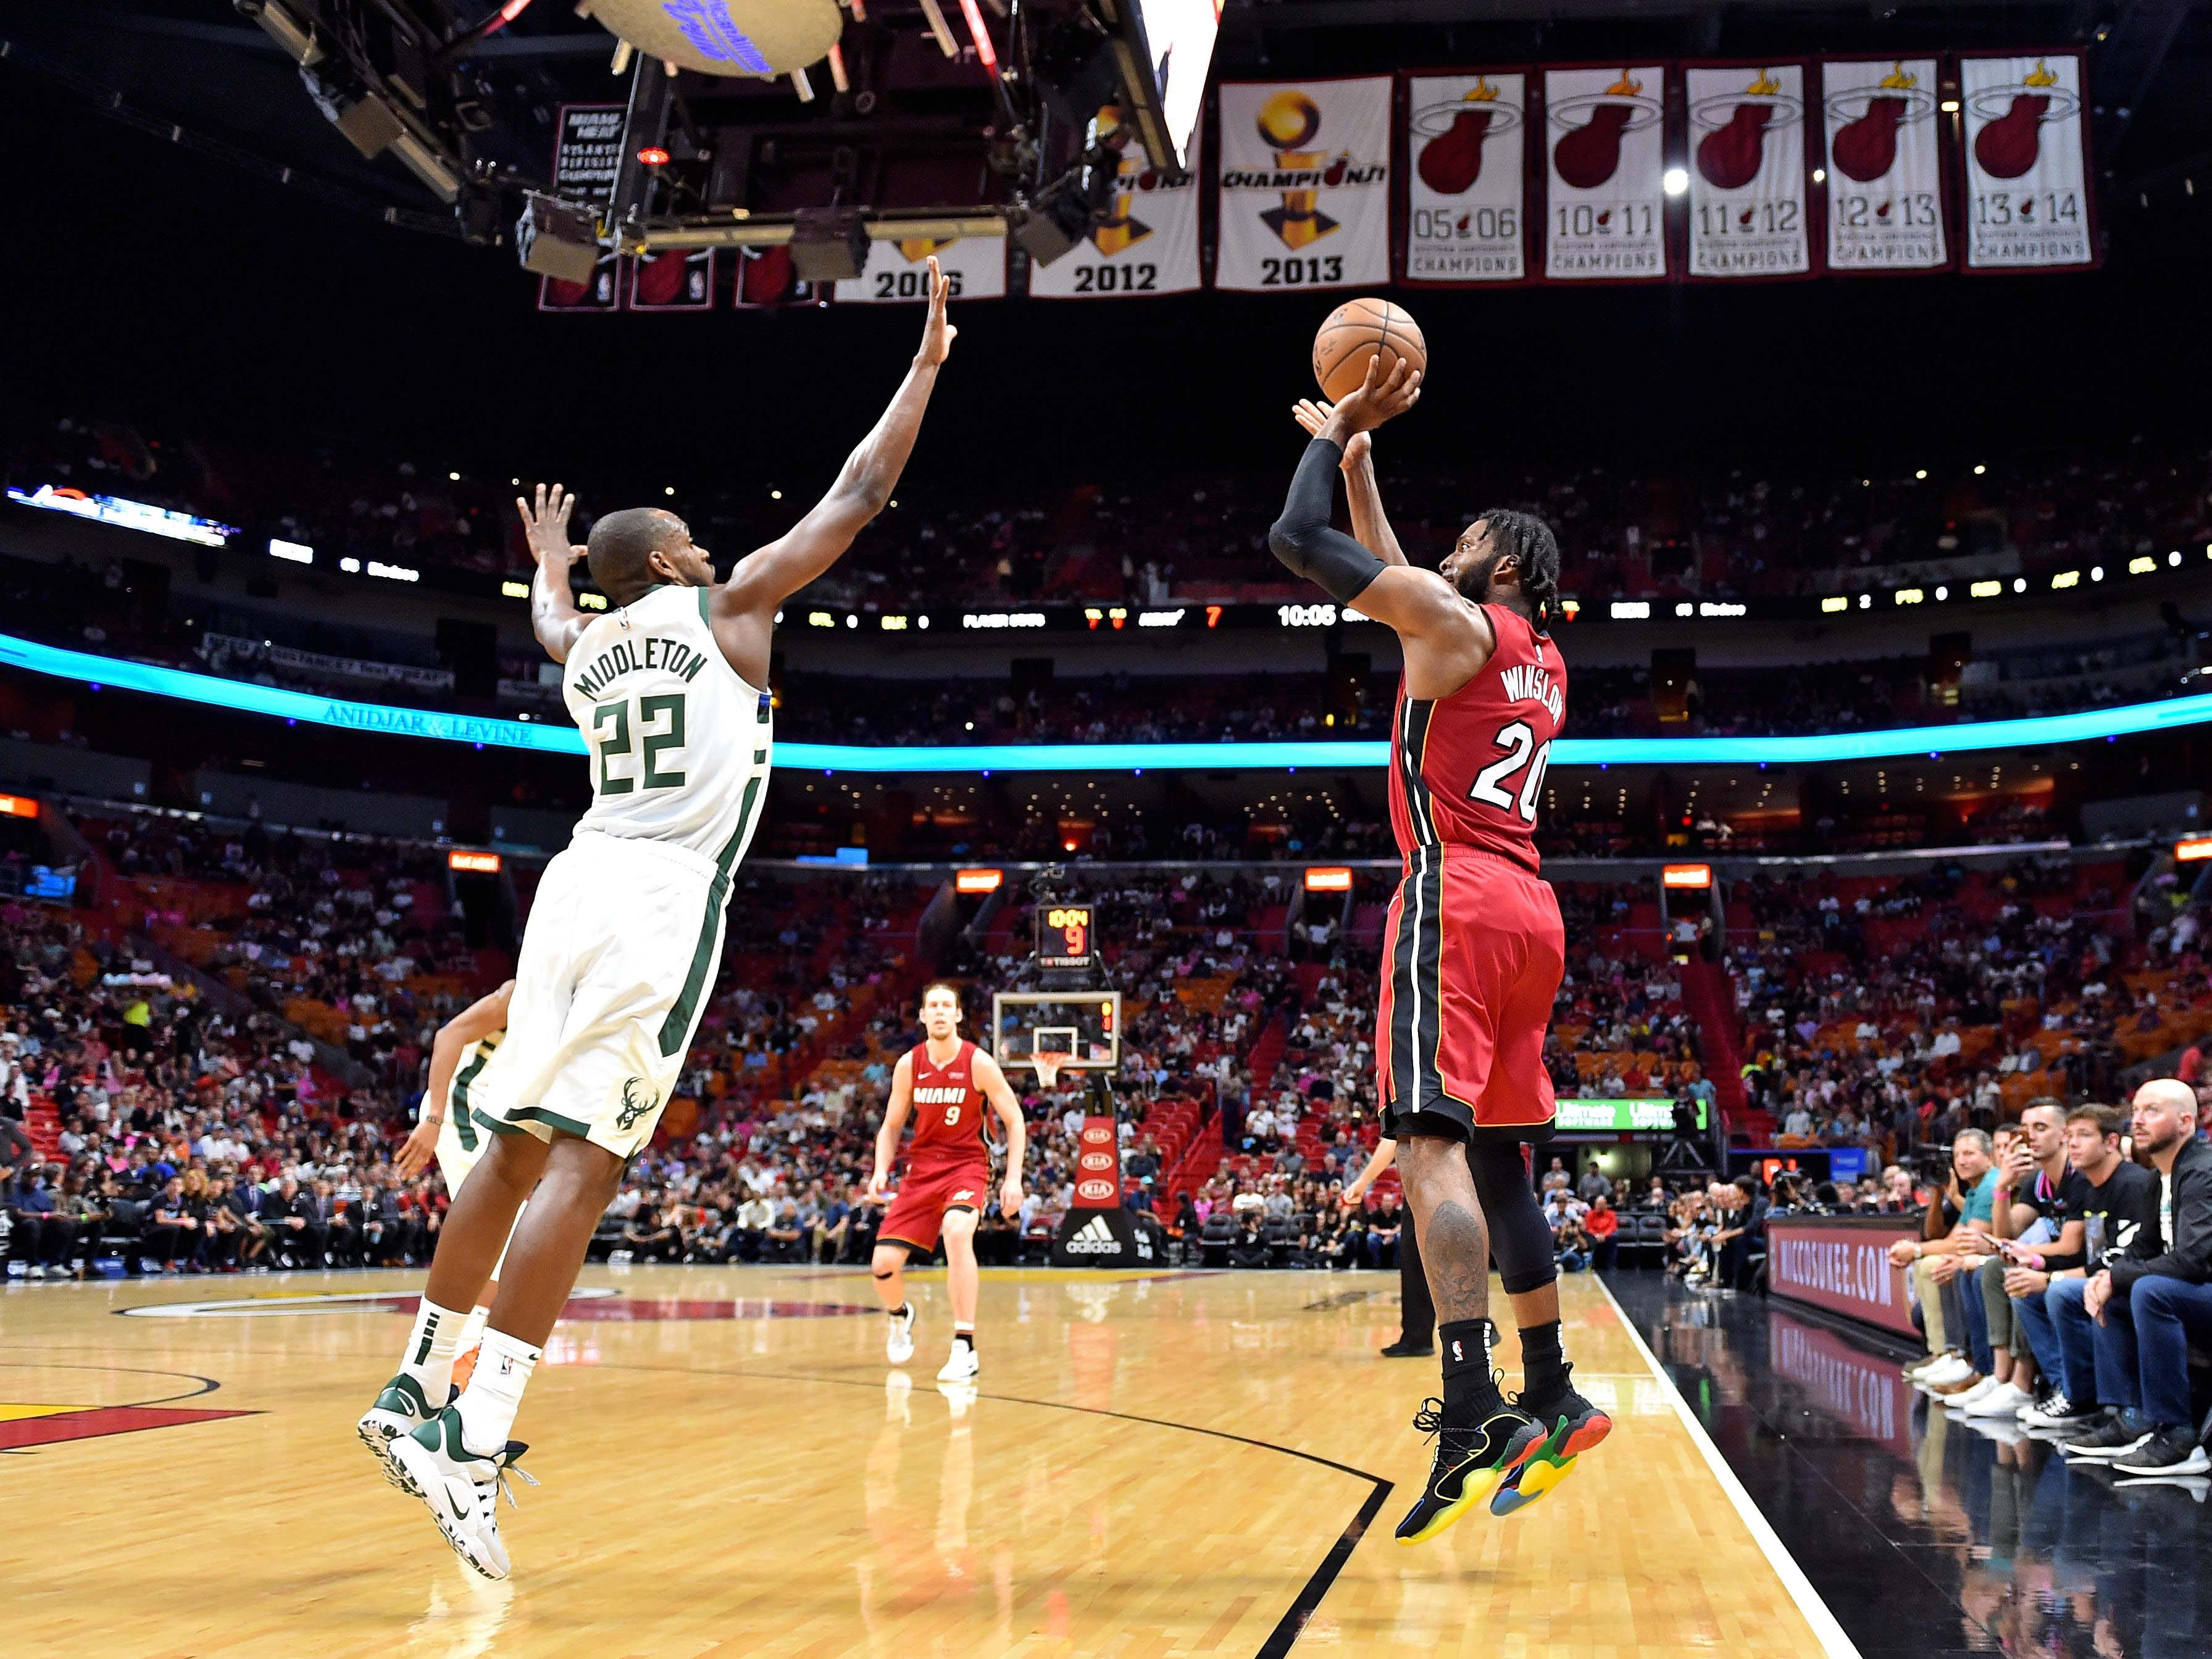 Miami Heat forward Justise Winslow makes a three-pointer over Khris Middleton in the first half.